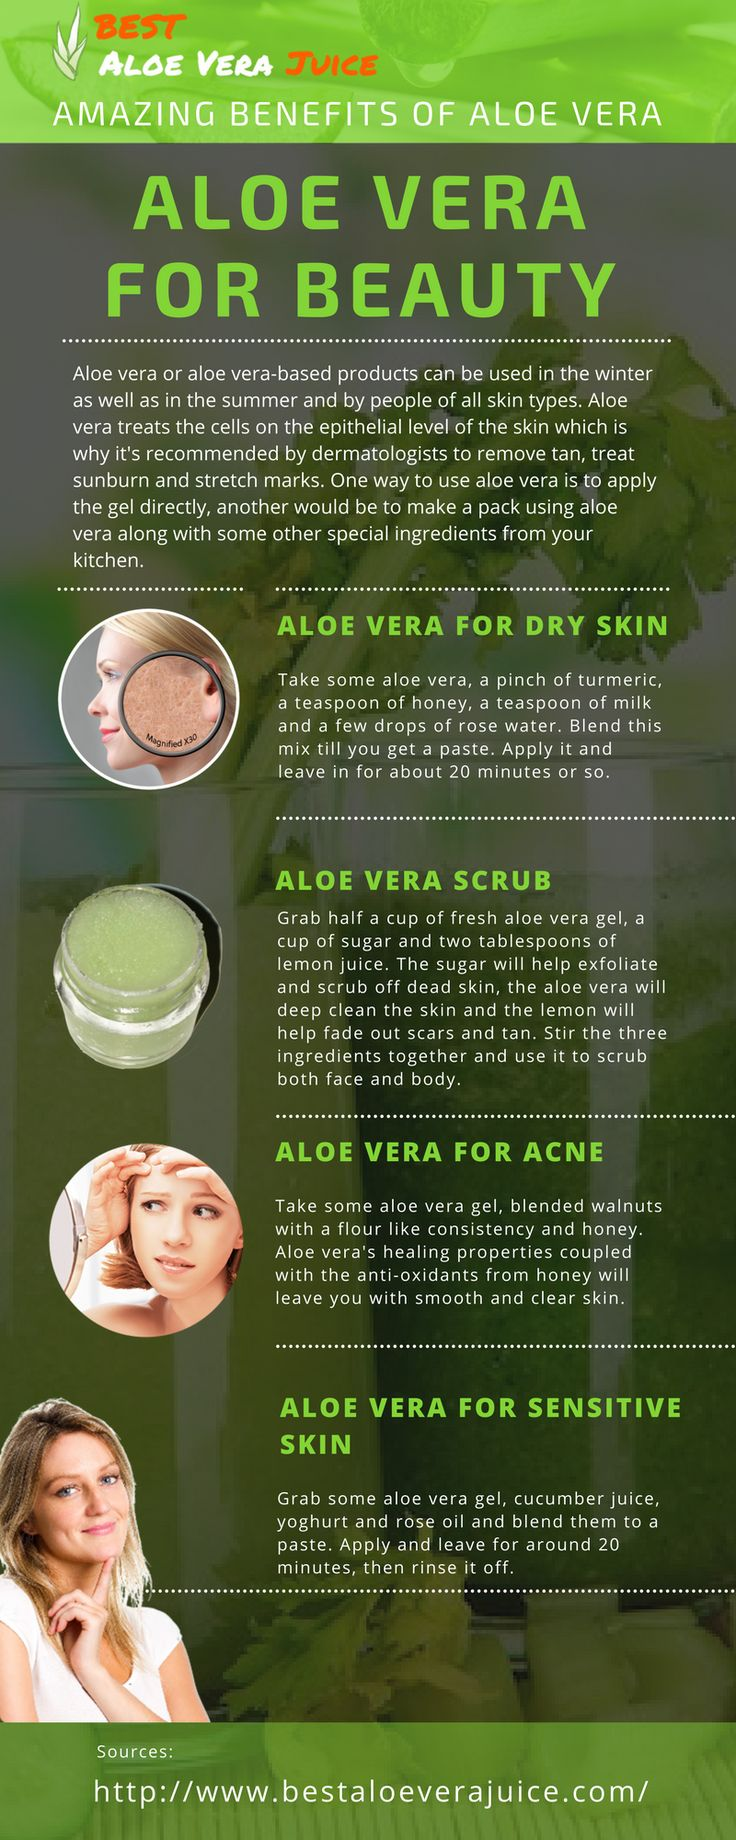 Aloe Vera is extensively used in beauty products and for good reason. It's got antiviral and antibacterial properties, and the ability to help treat every